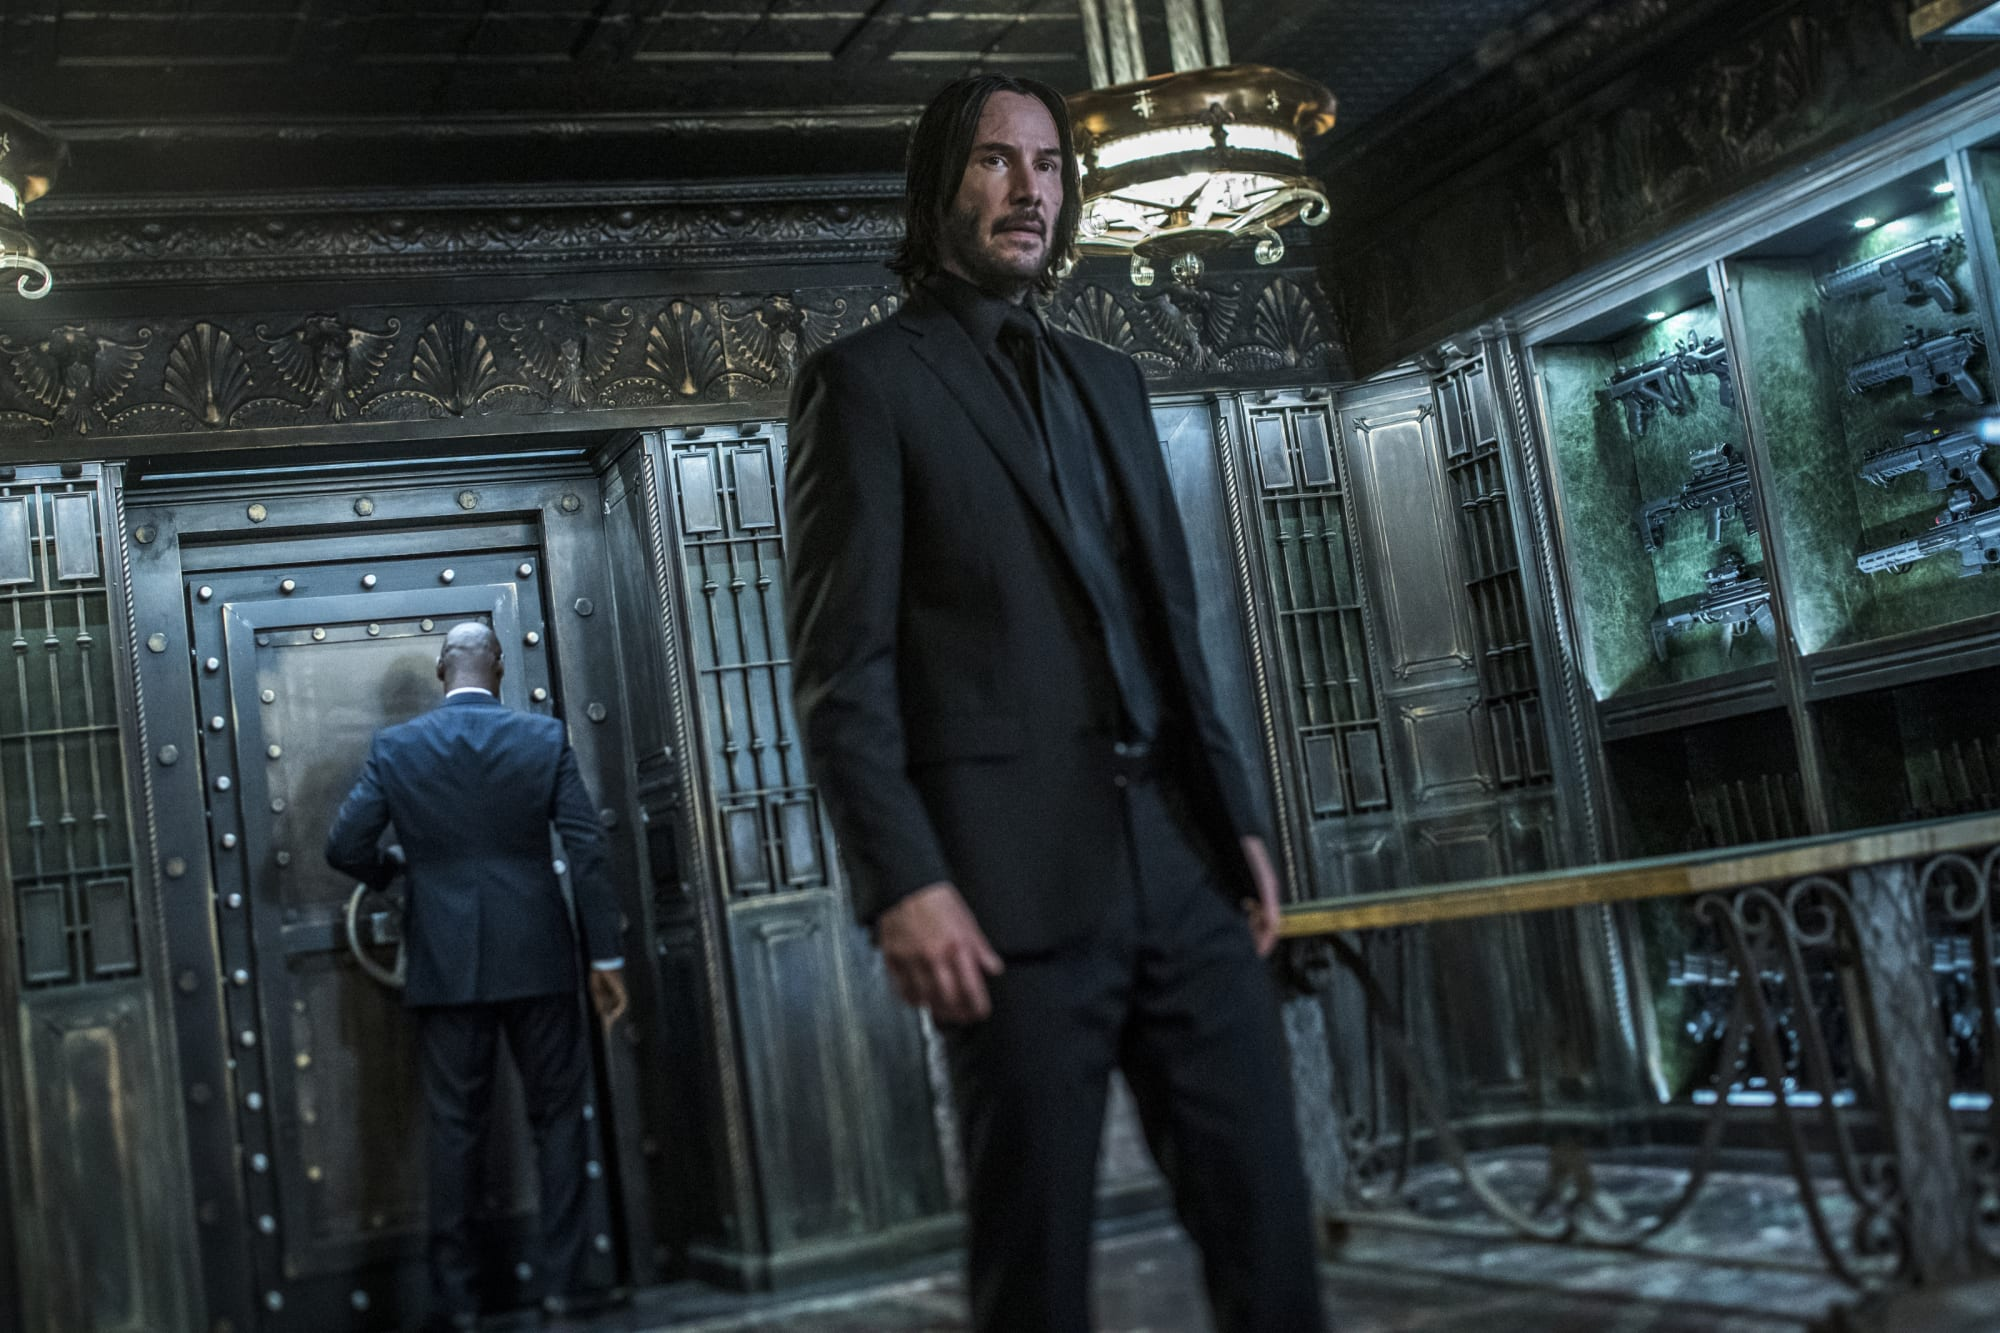 Travel Tuesday: John Wick is transformed into a wild roller coaster